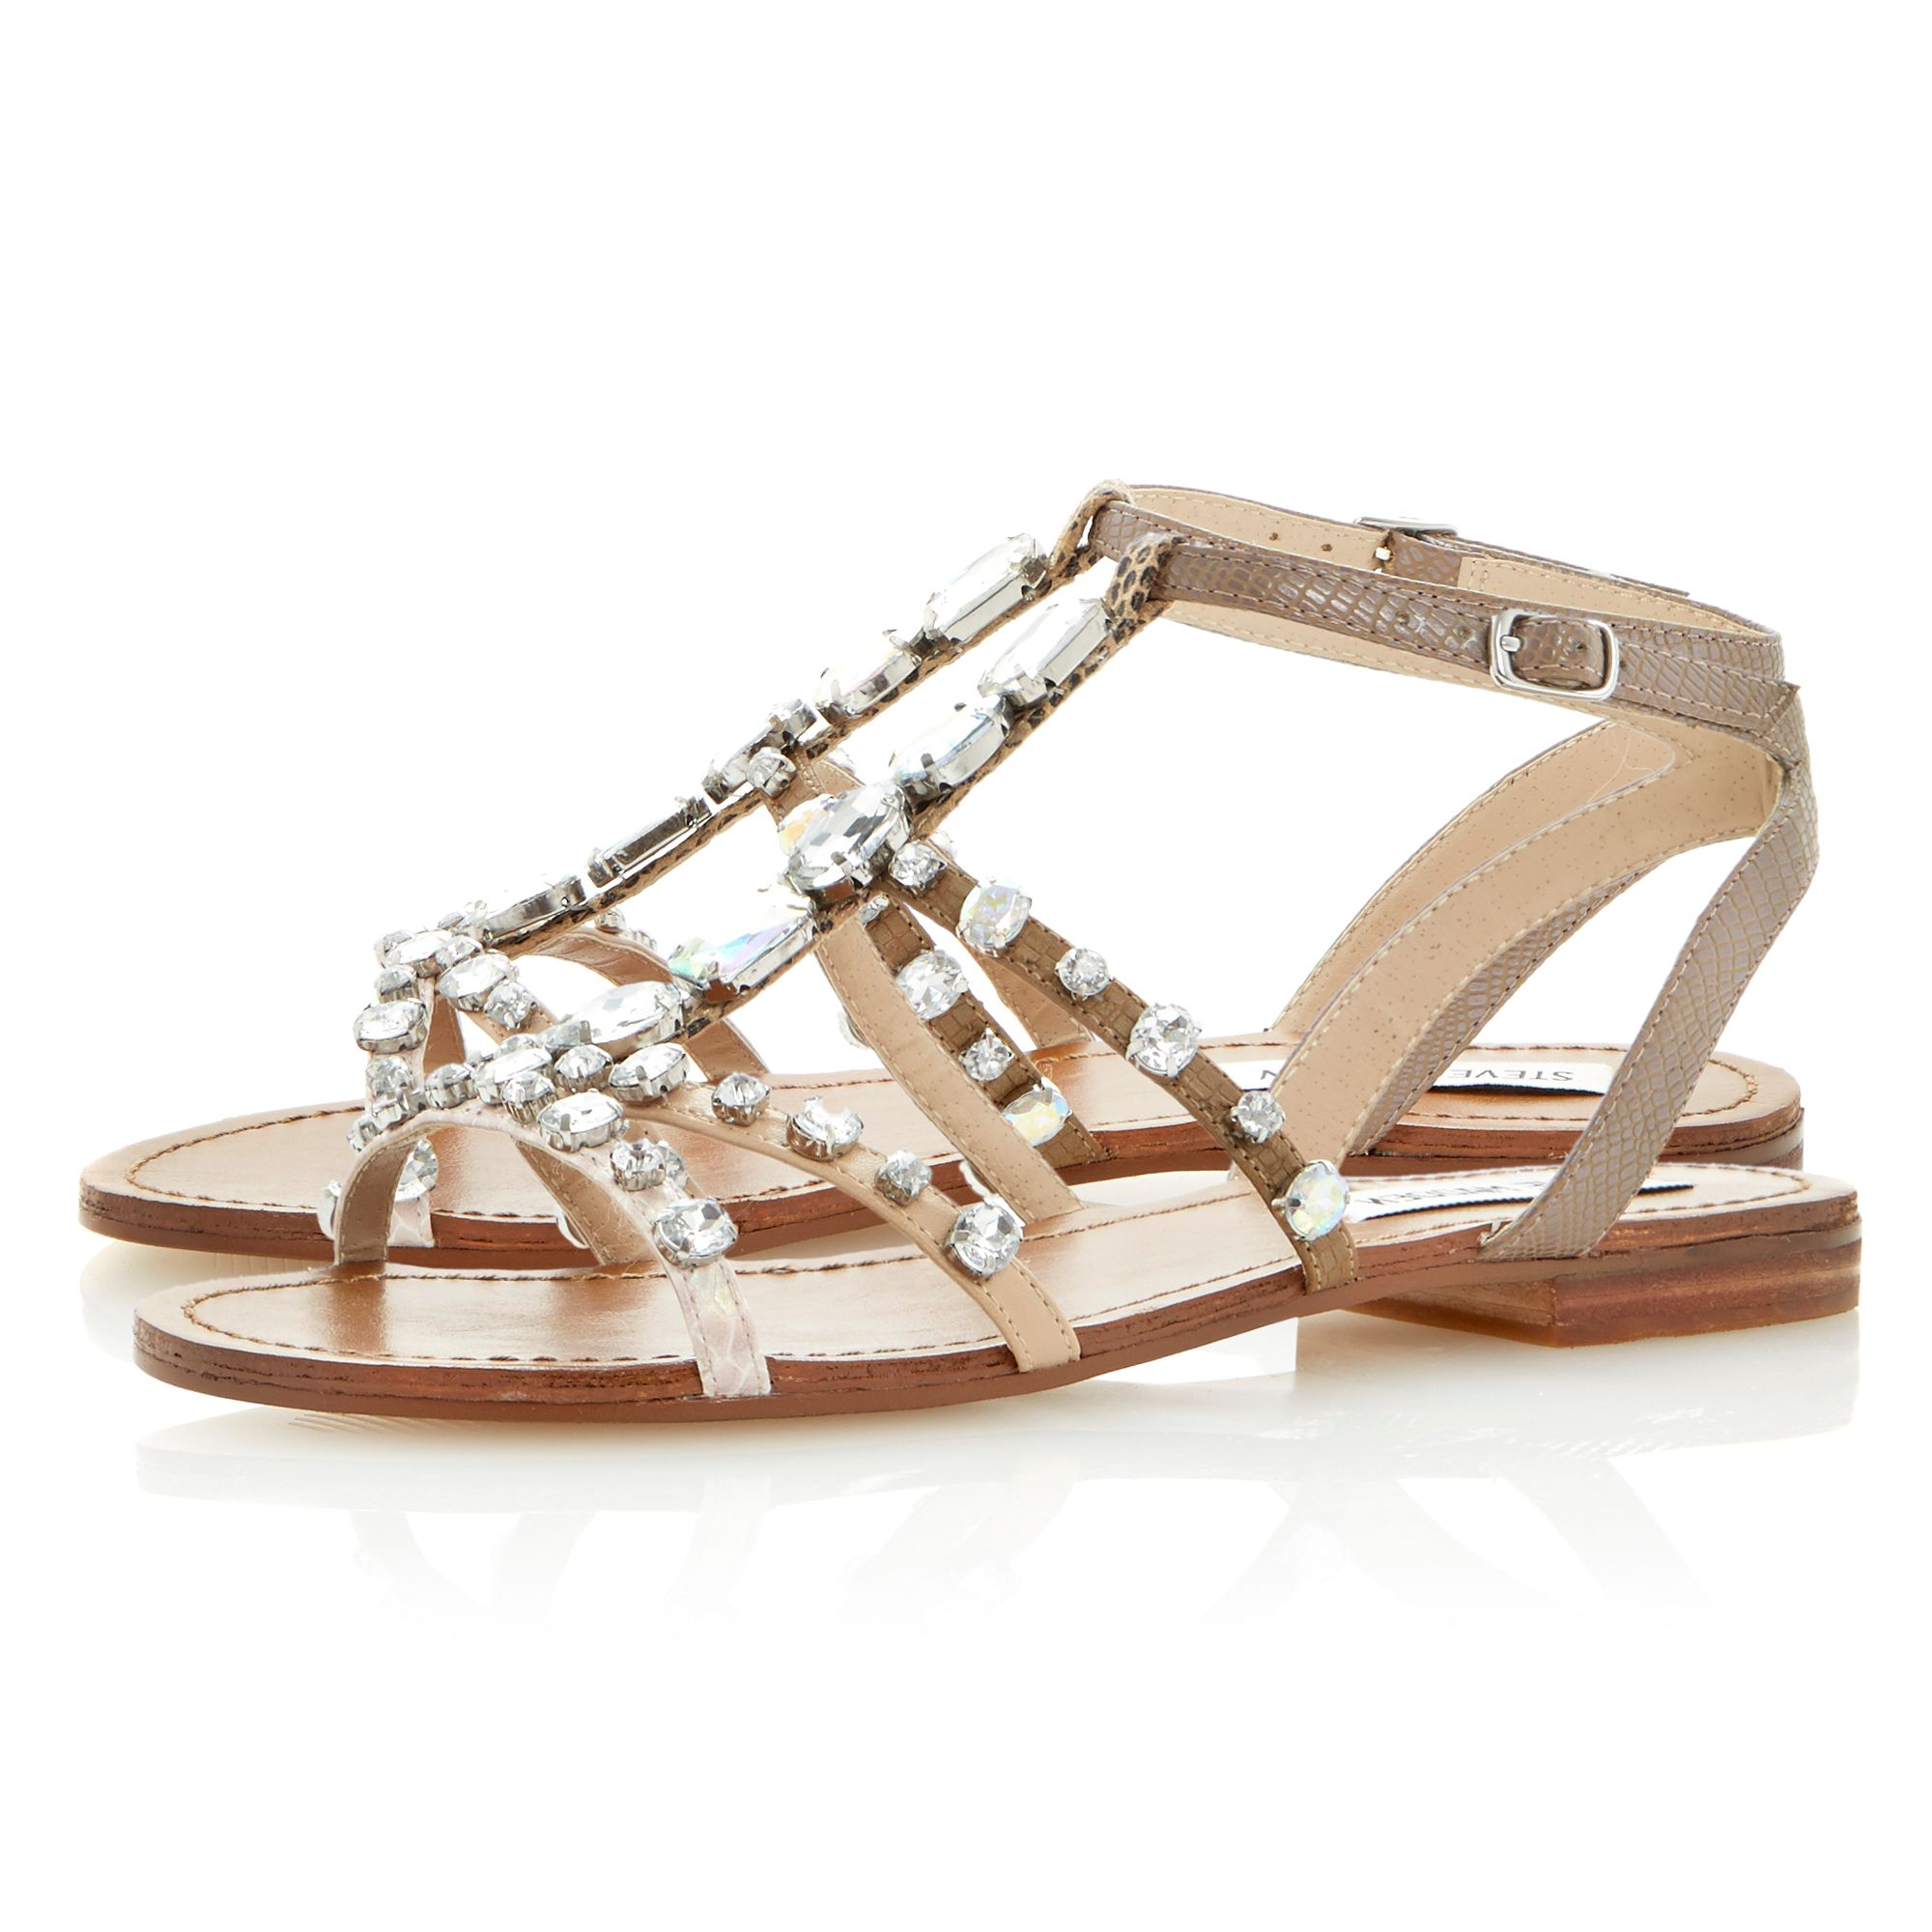 B jewelled diamante flat sandals